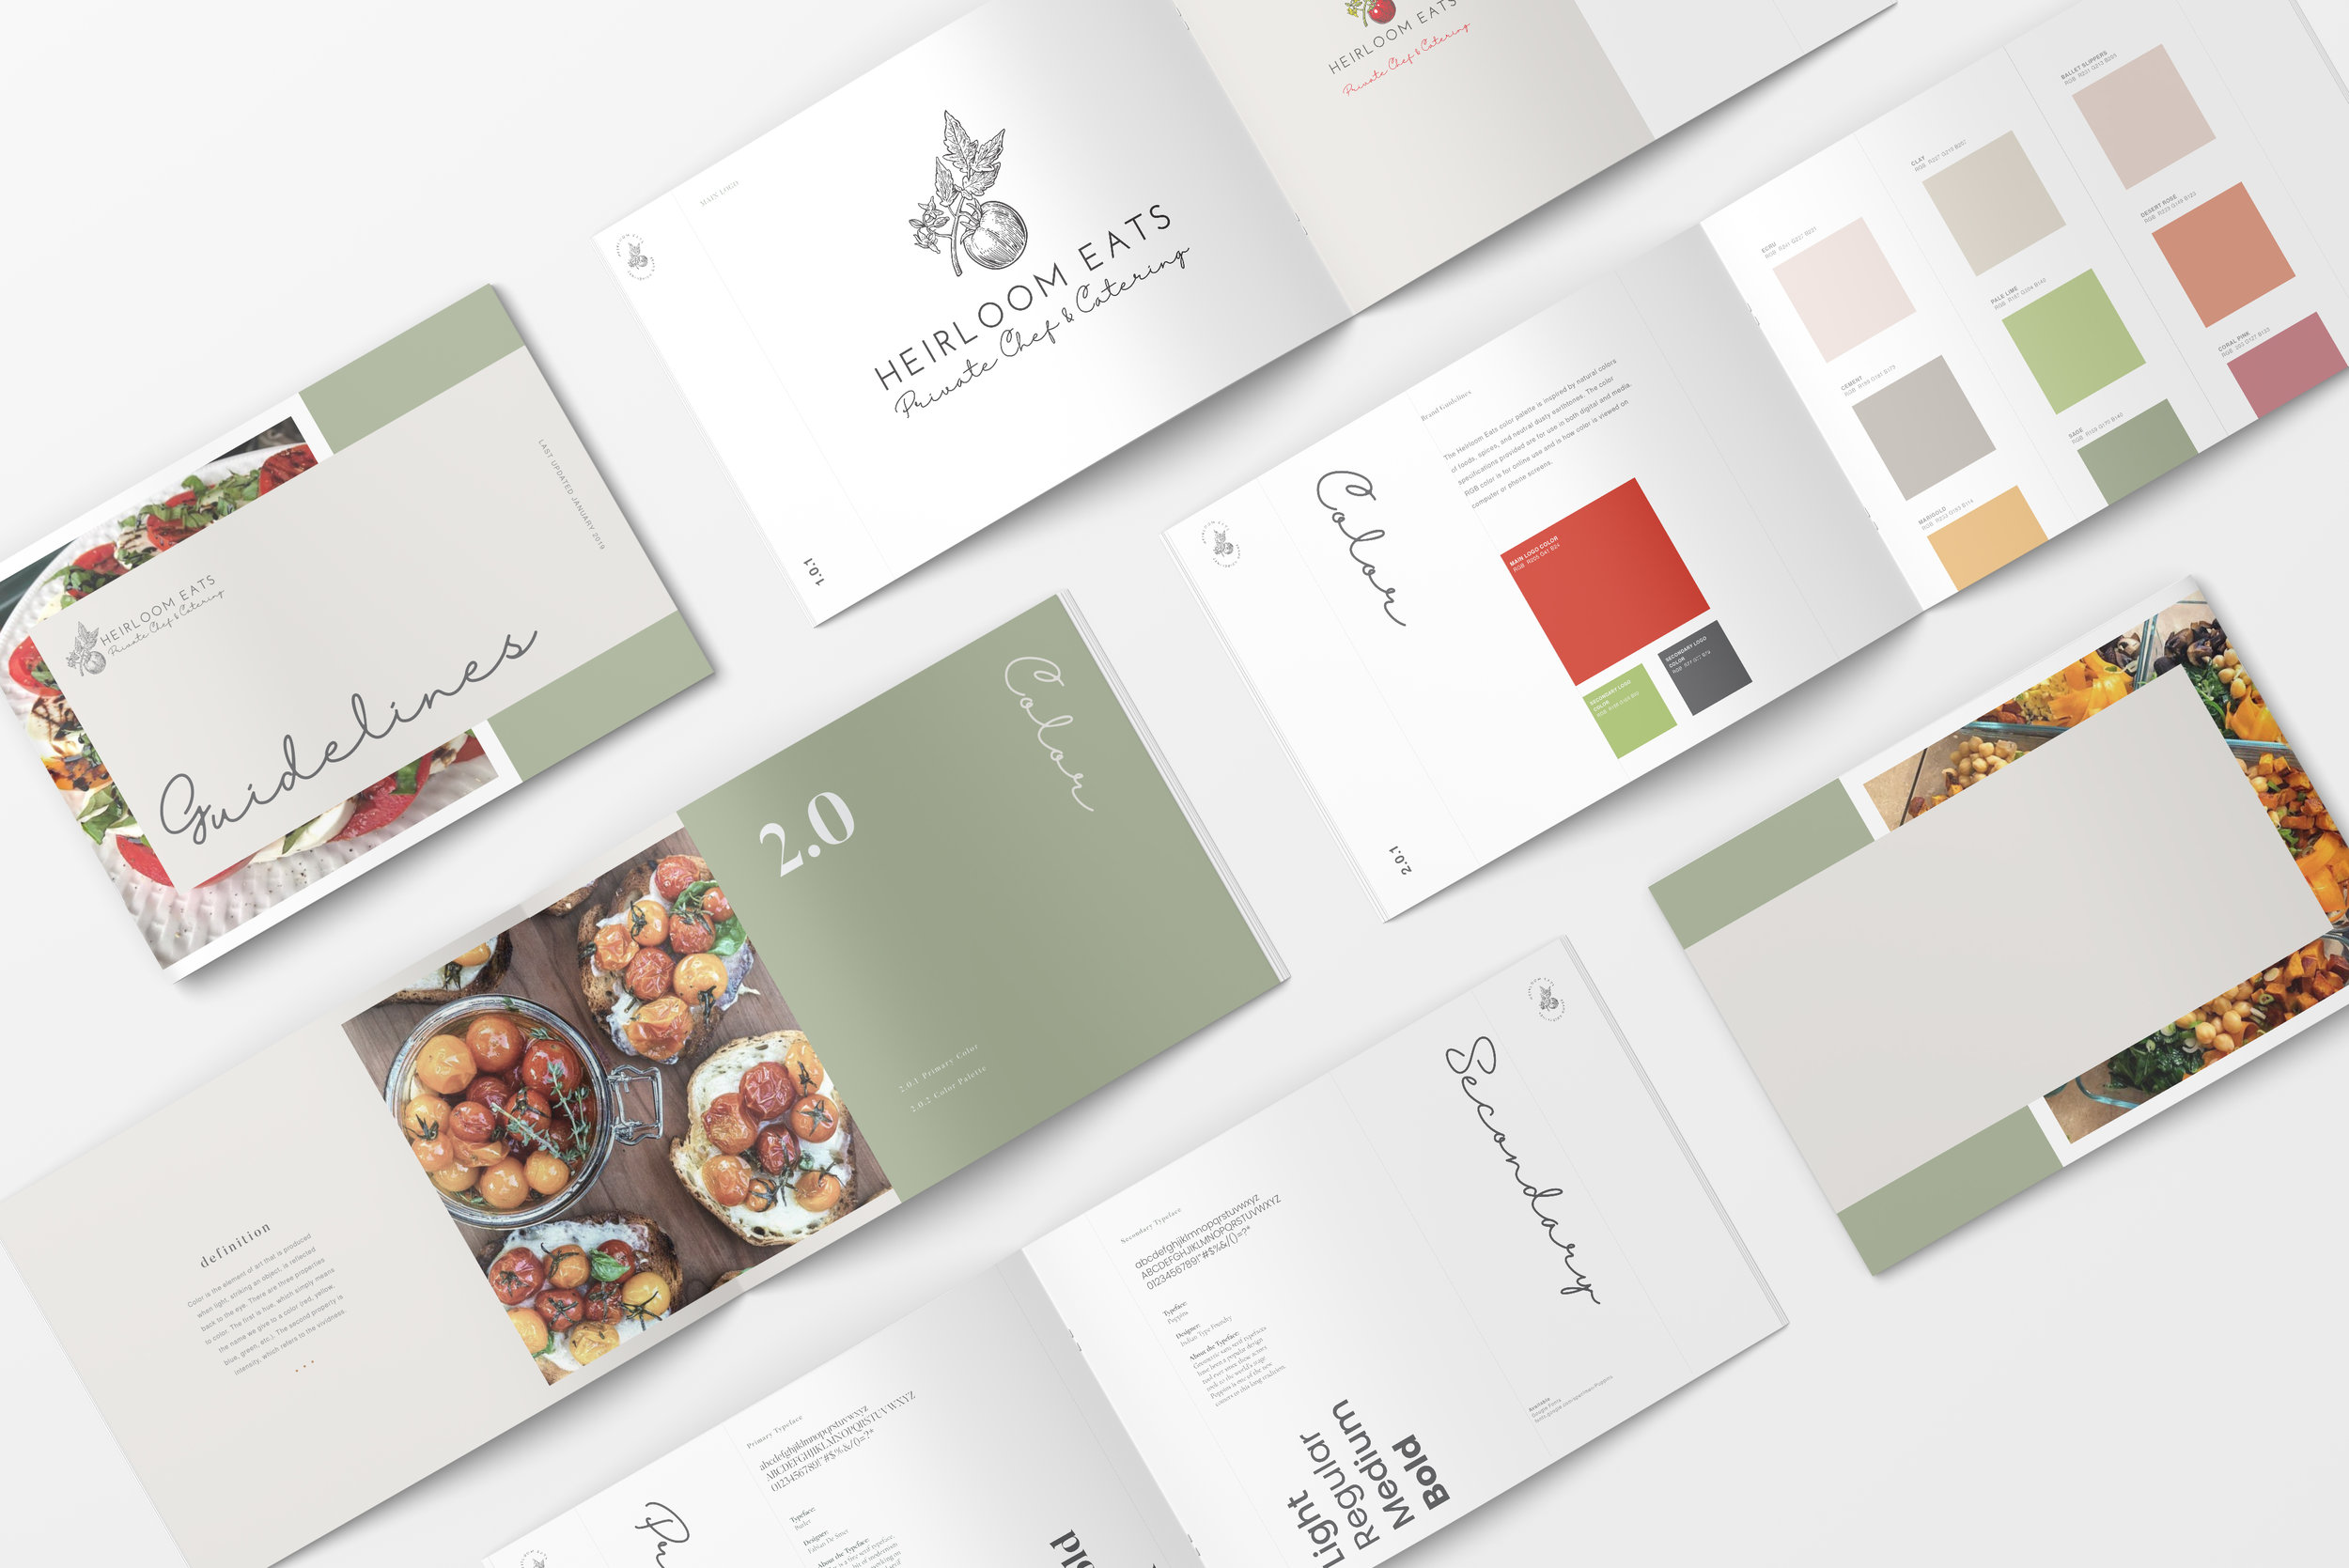 Heirloom Brand Book Mockup.jpg